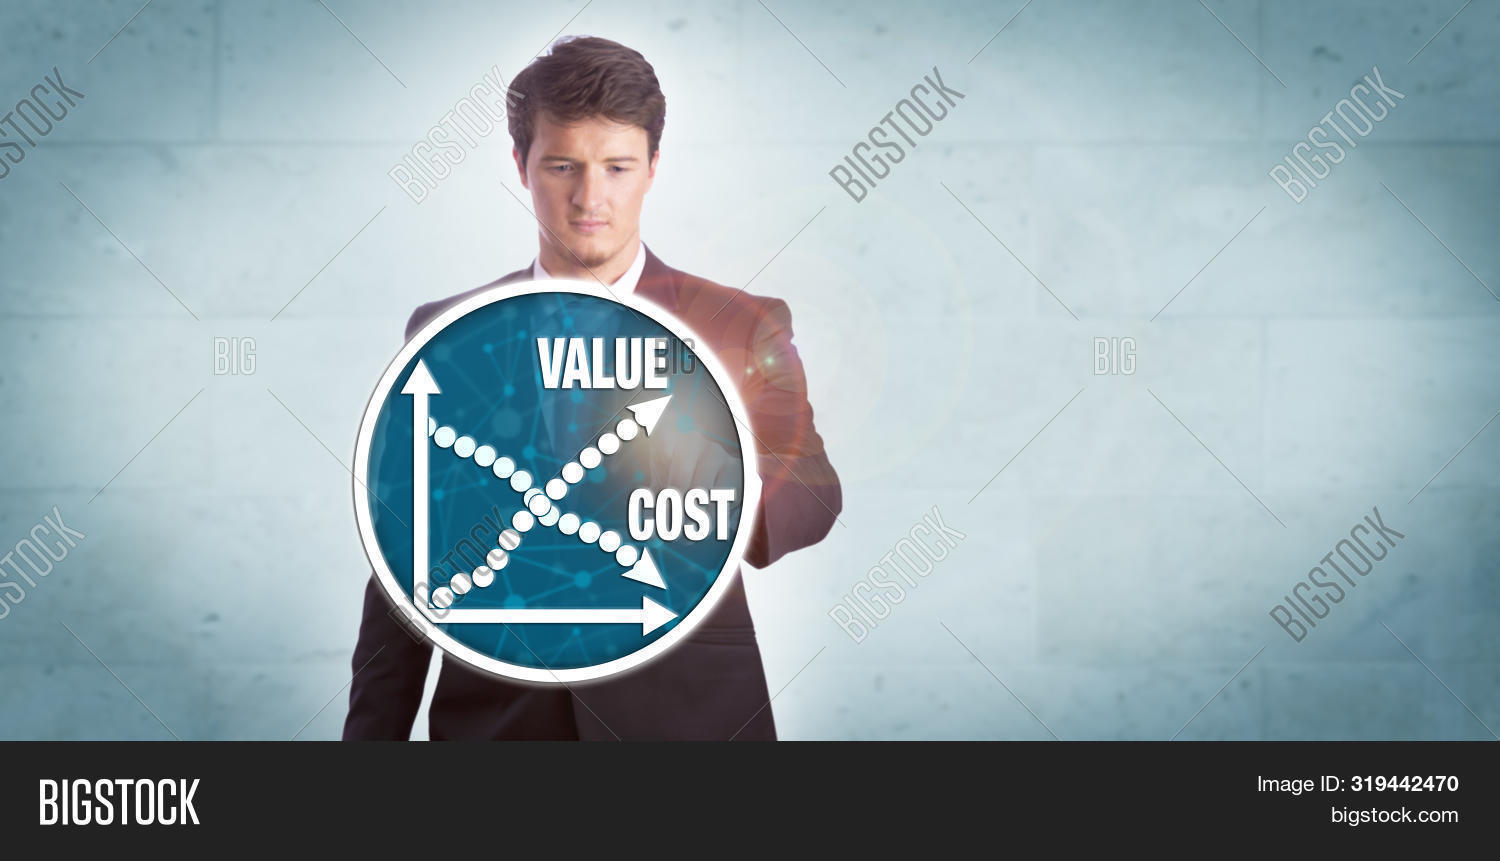 Young Businessman Touching Chart Icon Depicting Growth Of Value Versus Reduction Of Cost. Technology